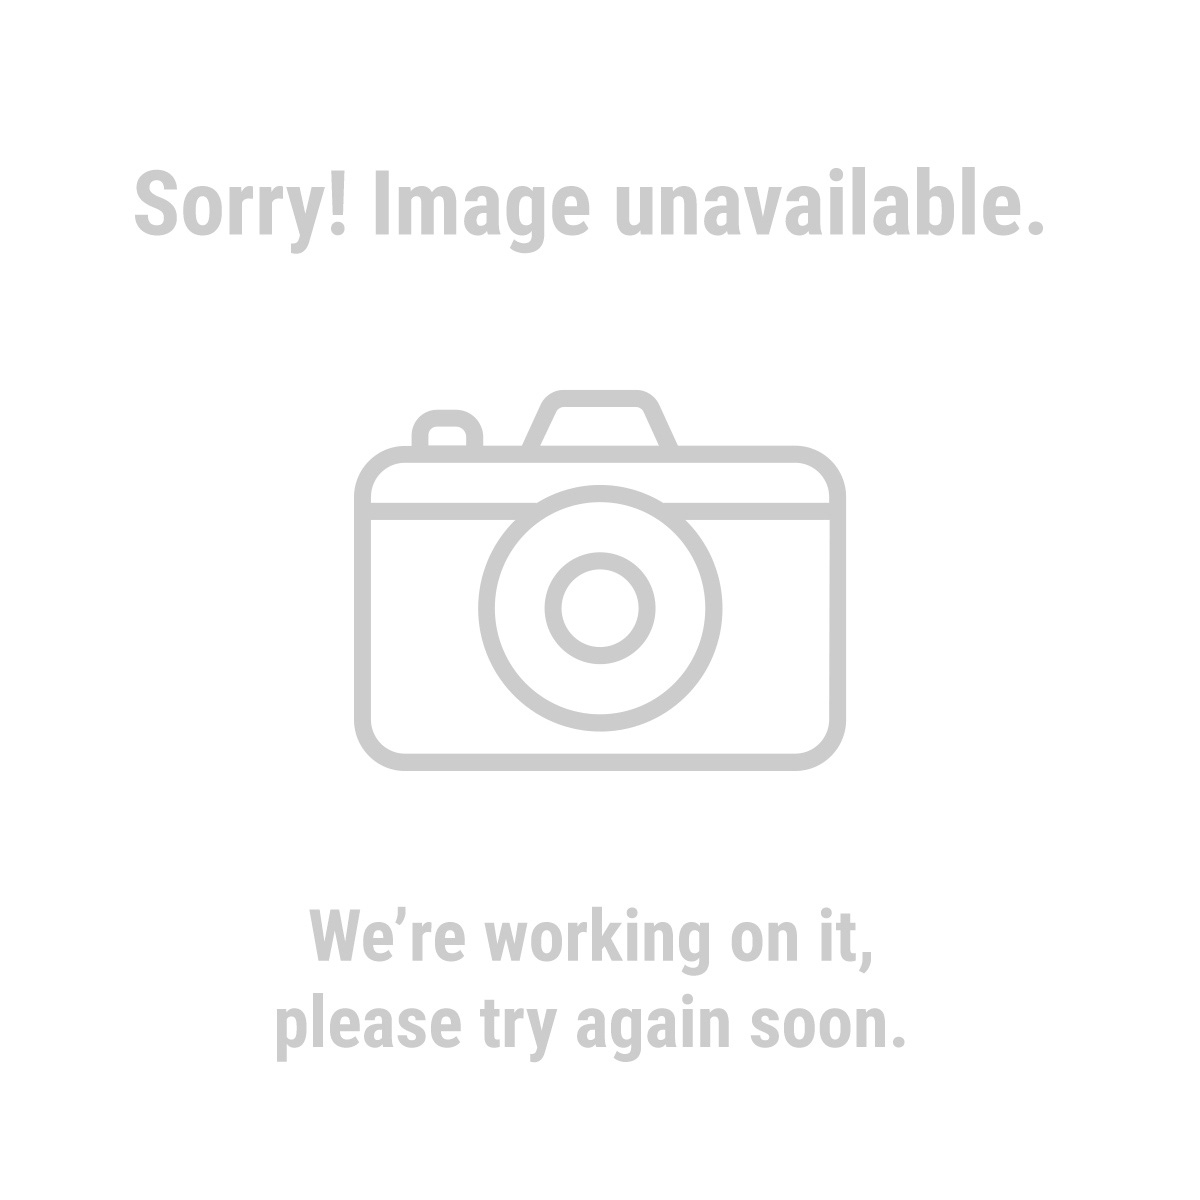 Storehouse 67589 28 Piece Electrical Clip Set